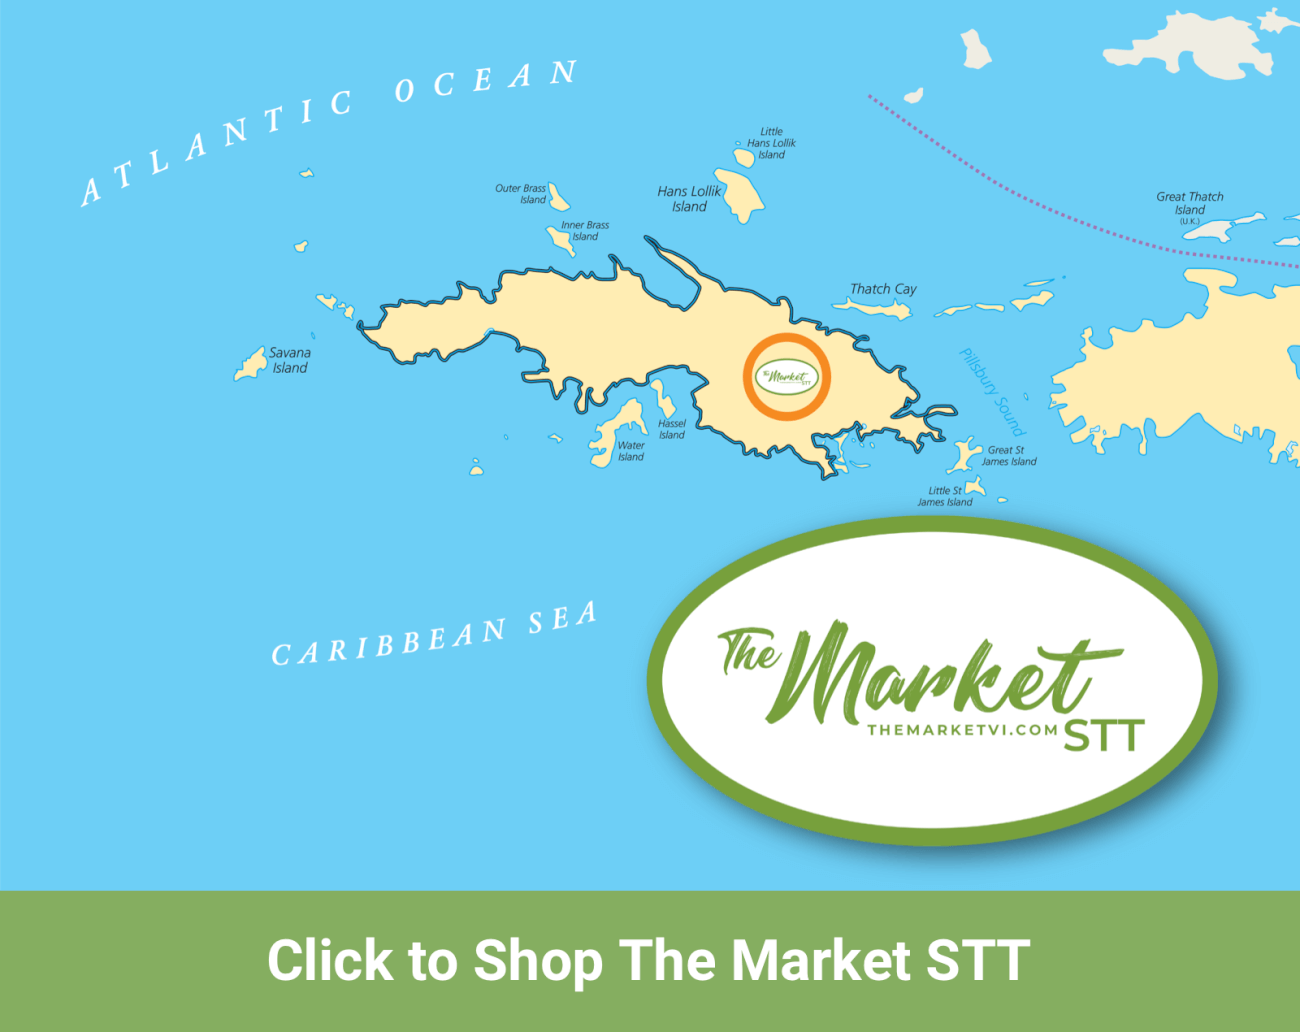 The Market STT